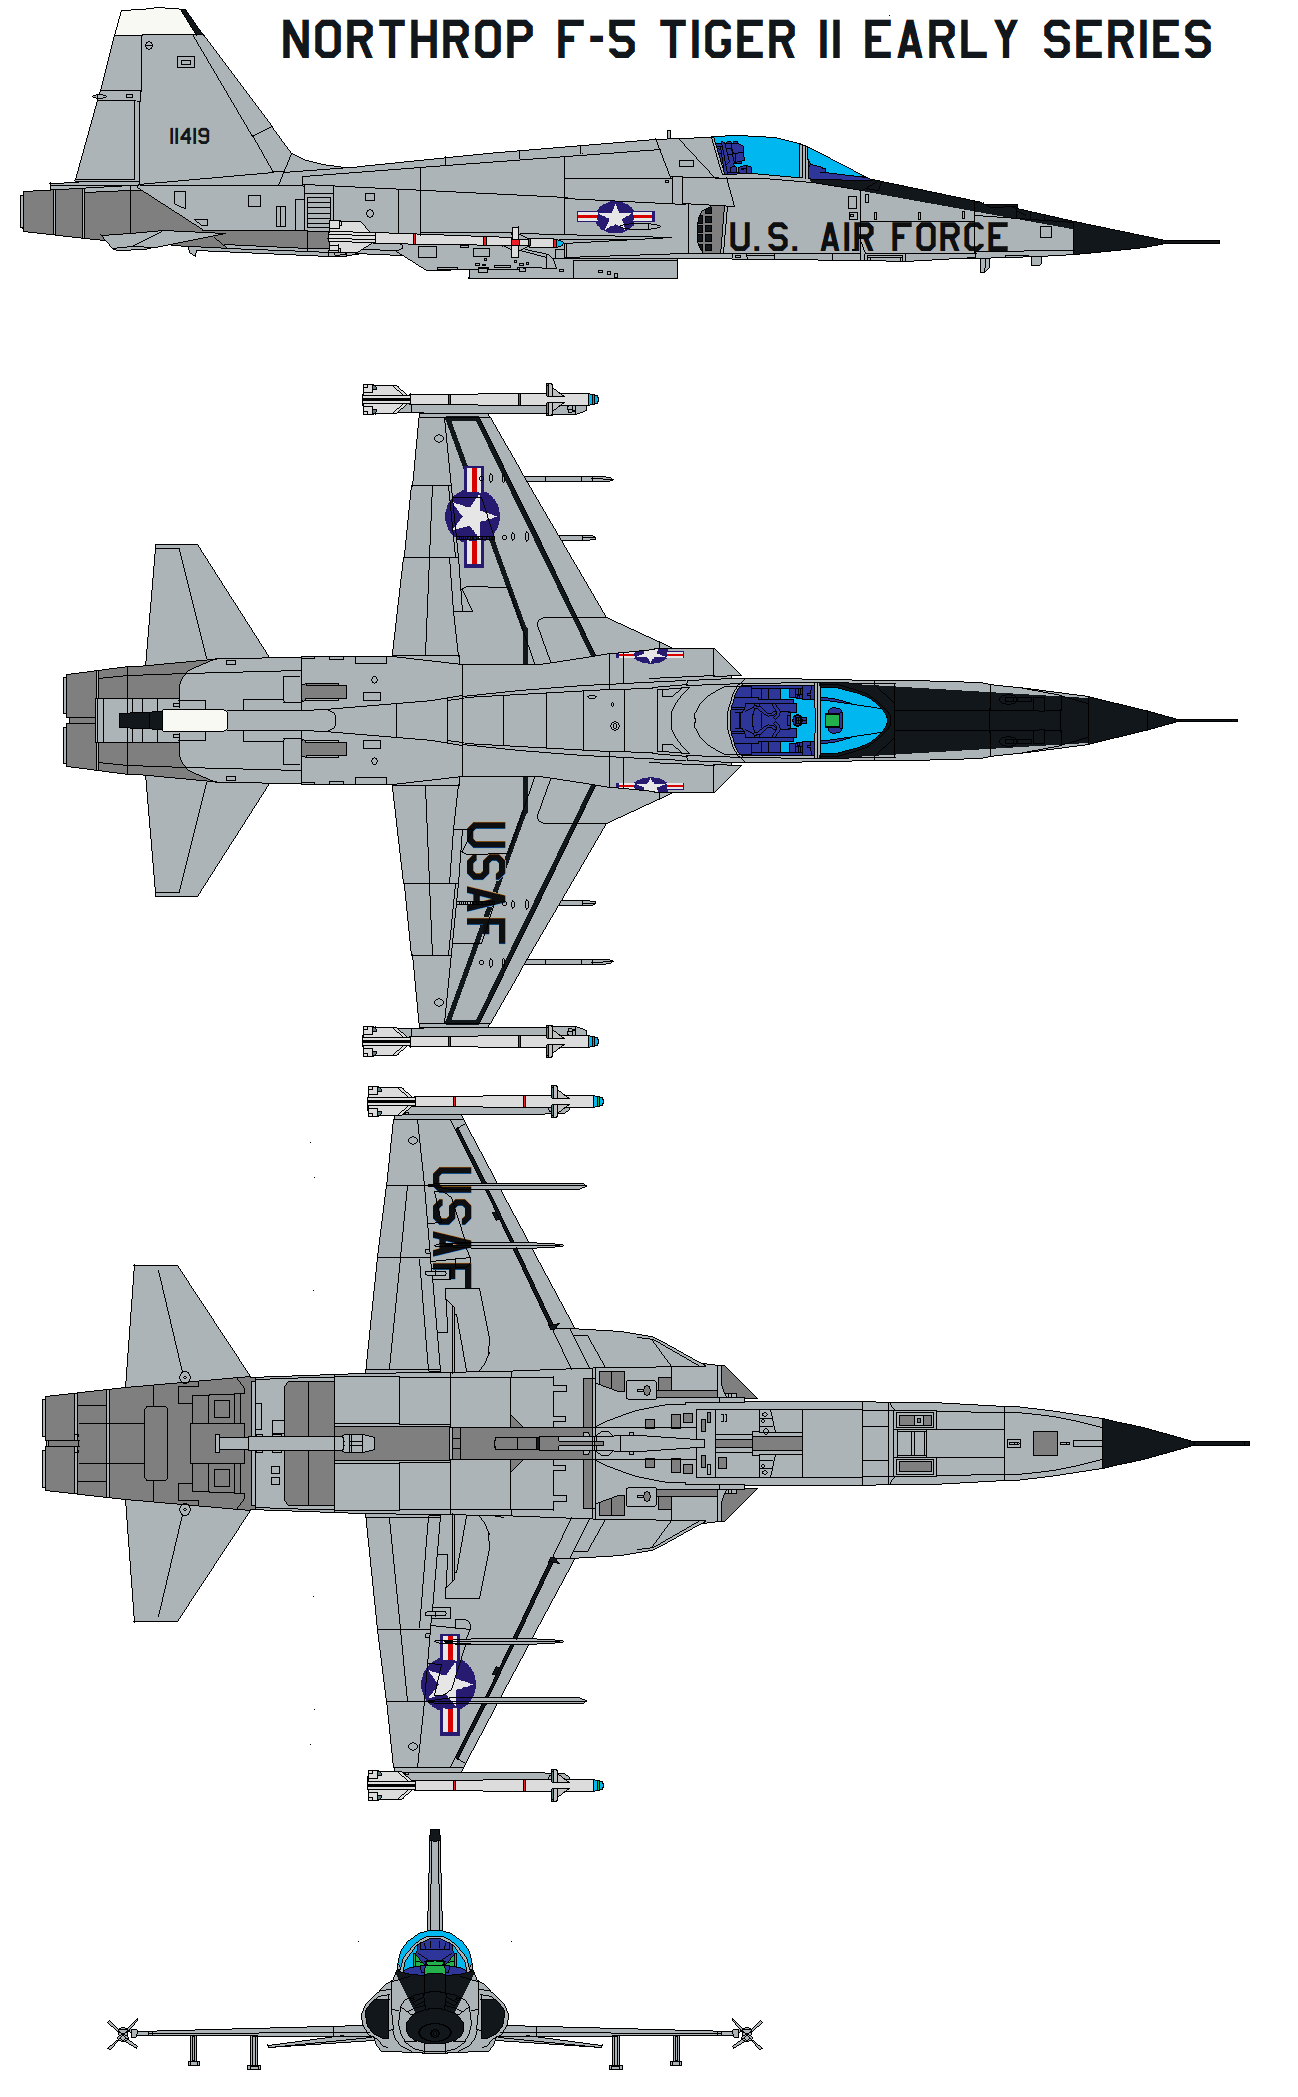 Northrop F-5 Tiger II early series by bagera3005 on DeviantArt